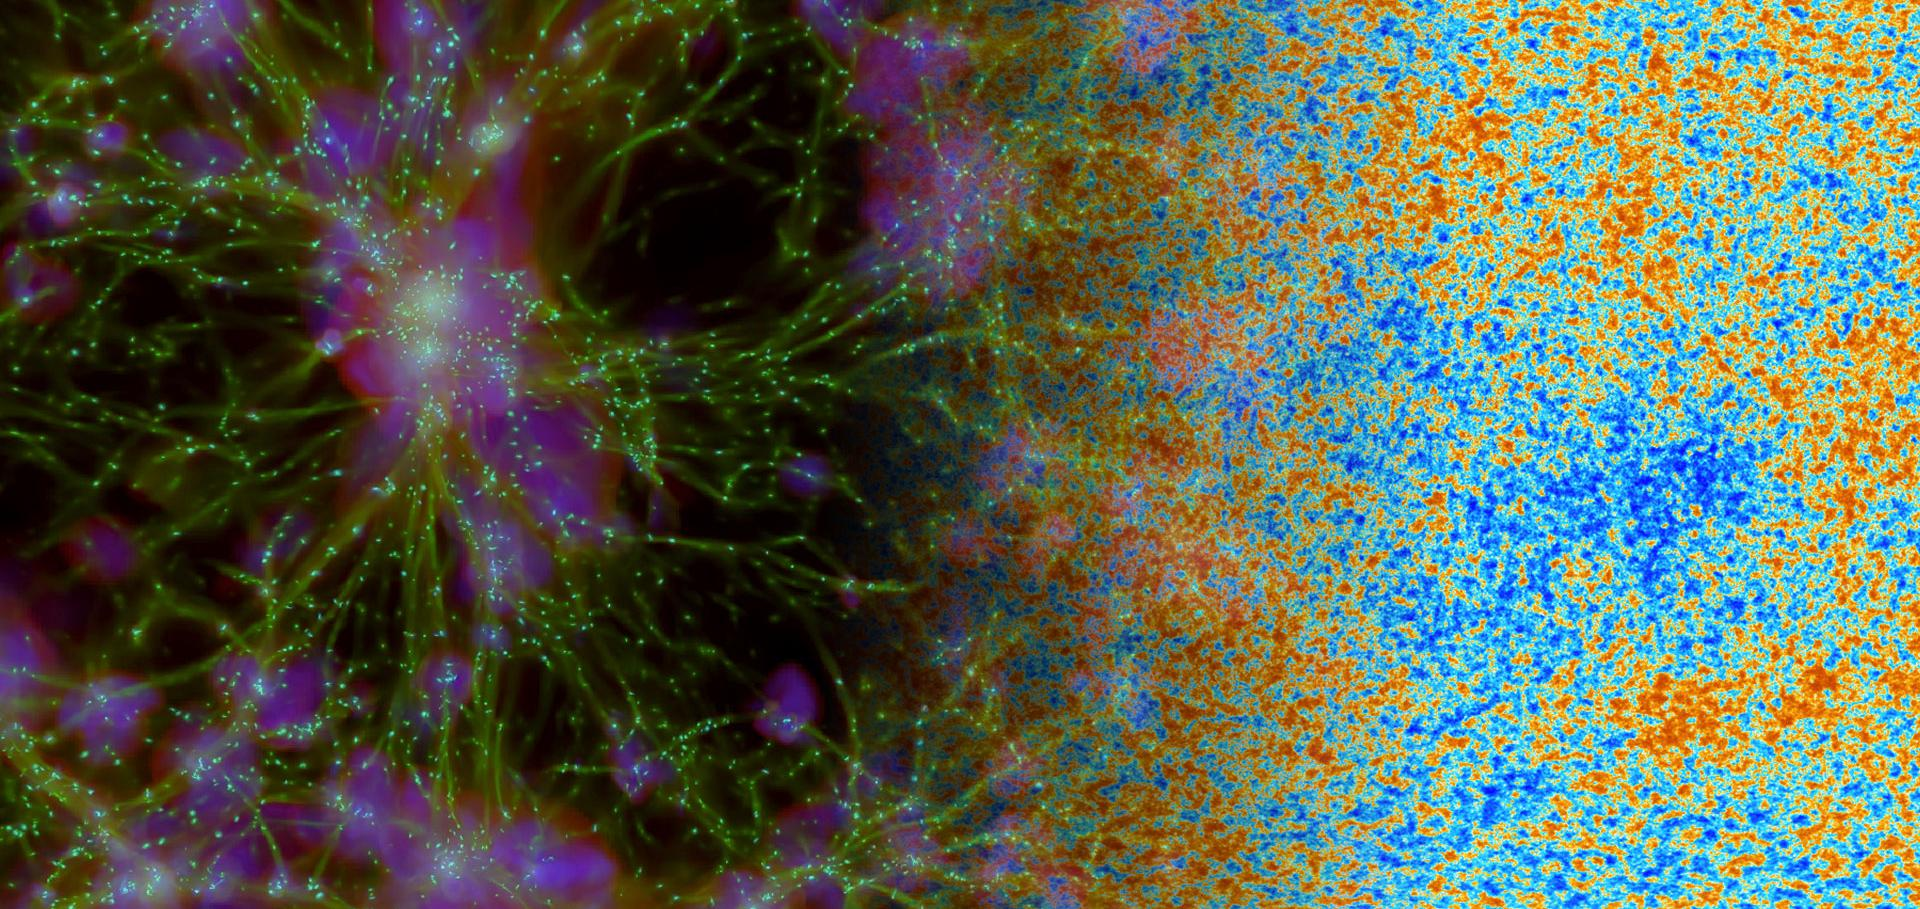 Abstract image to represent particle astrophysics and cosmology